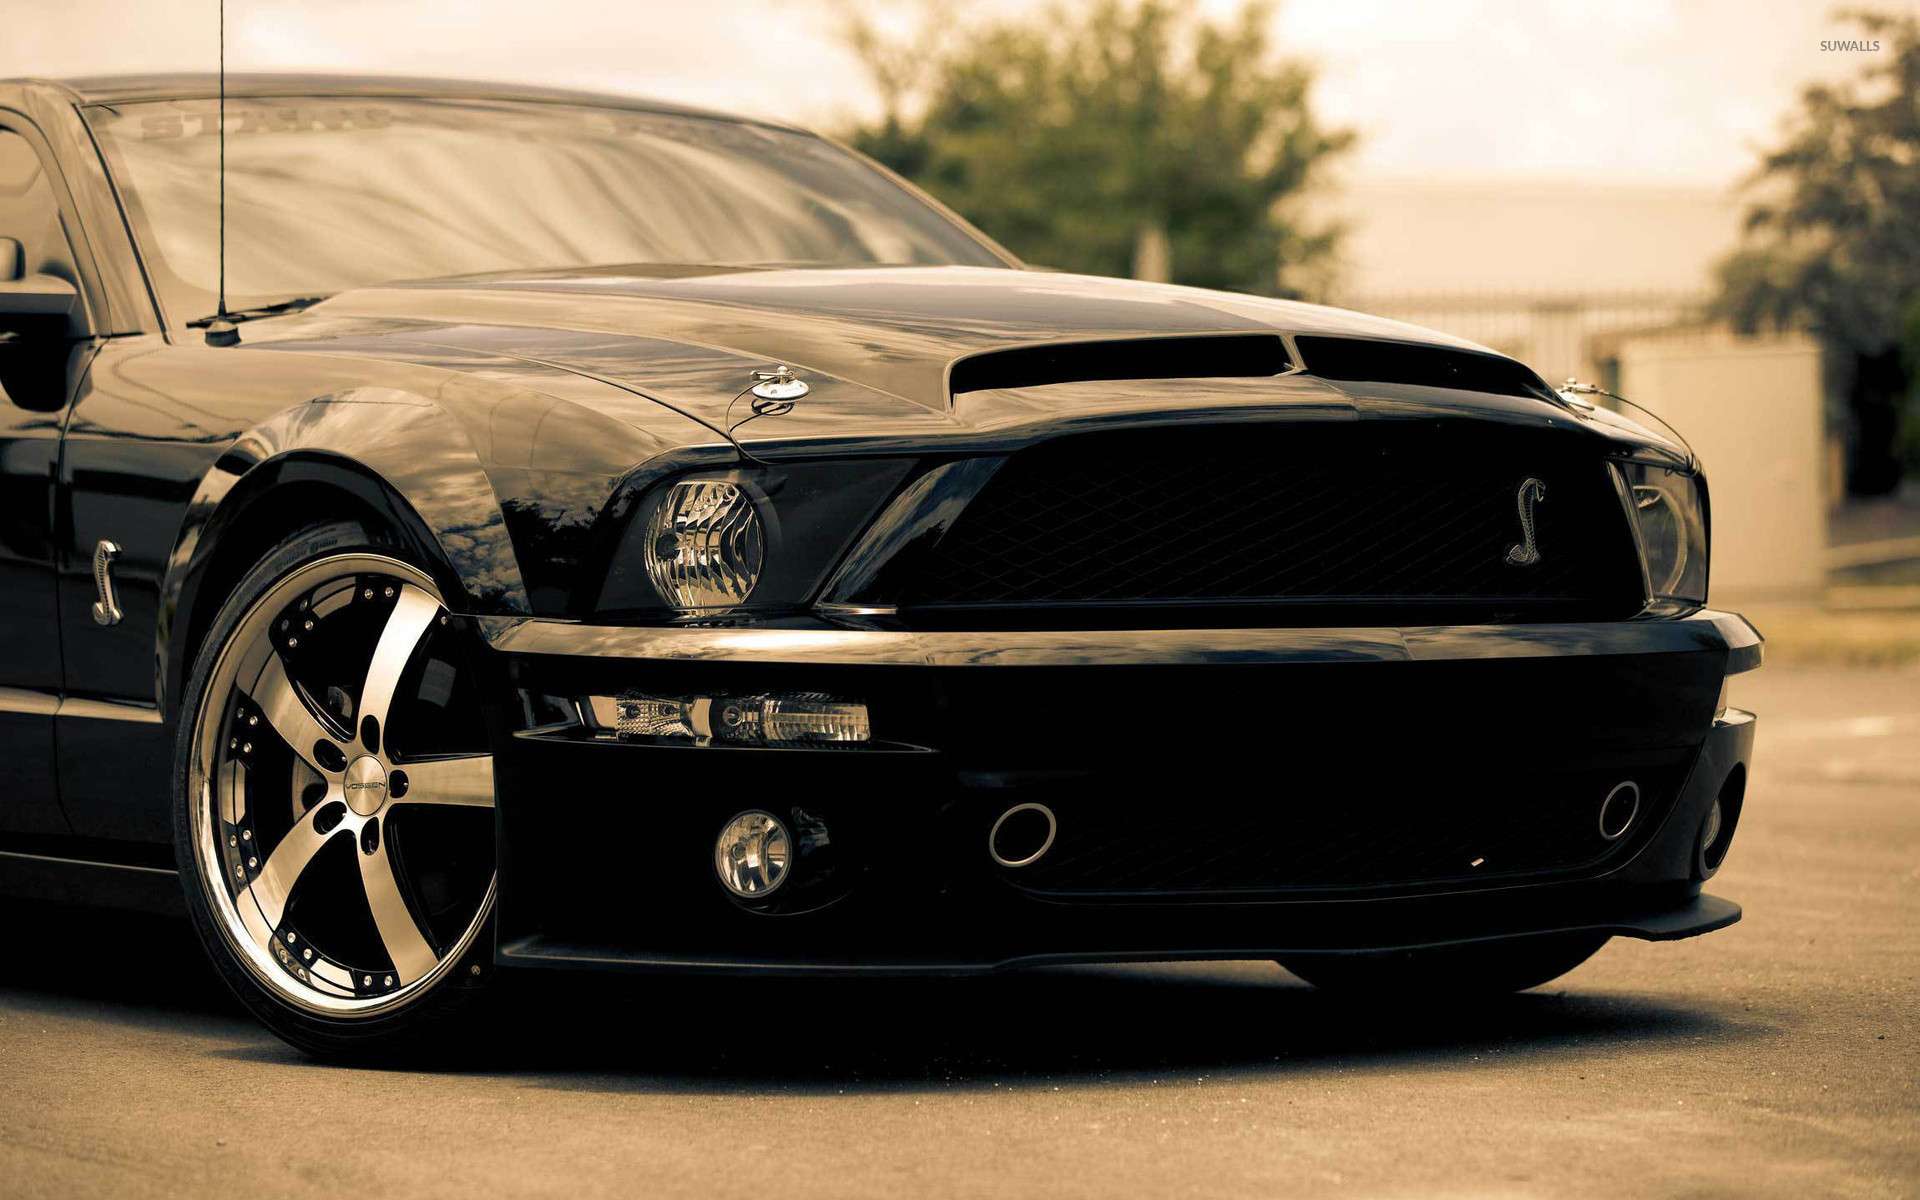 1920x1200 Shelby Mustang wallpaper  jpg